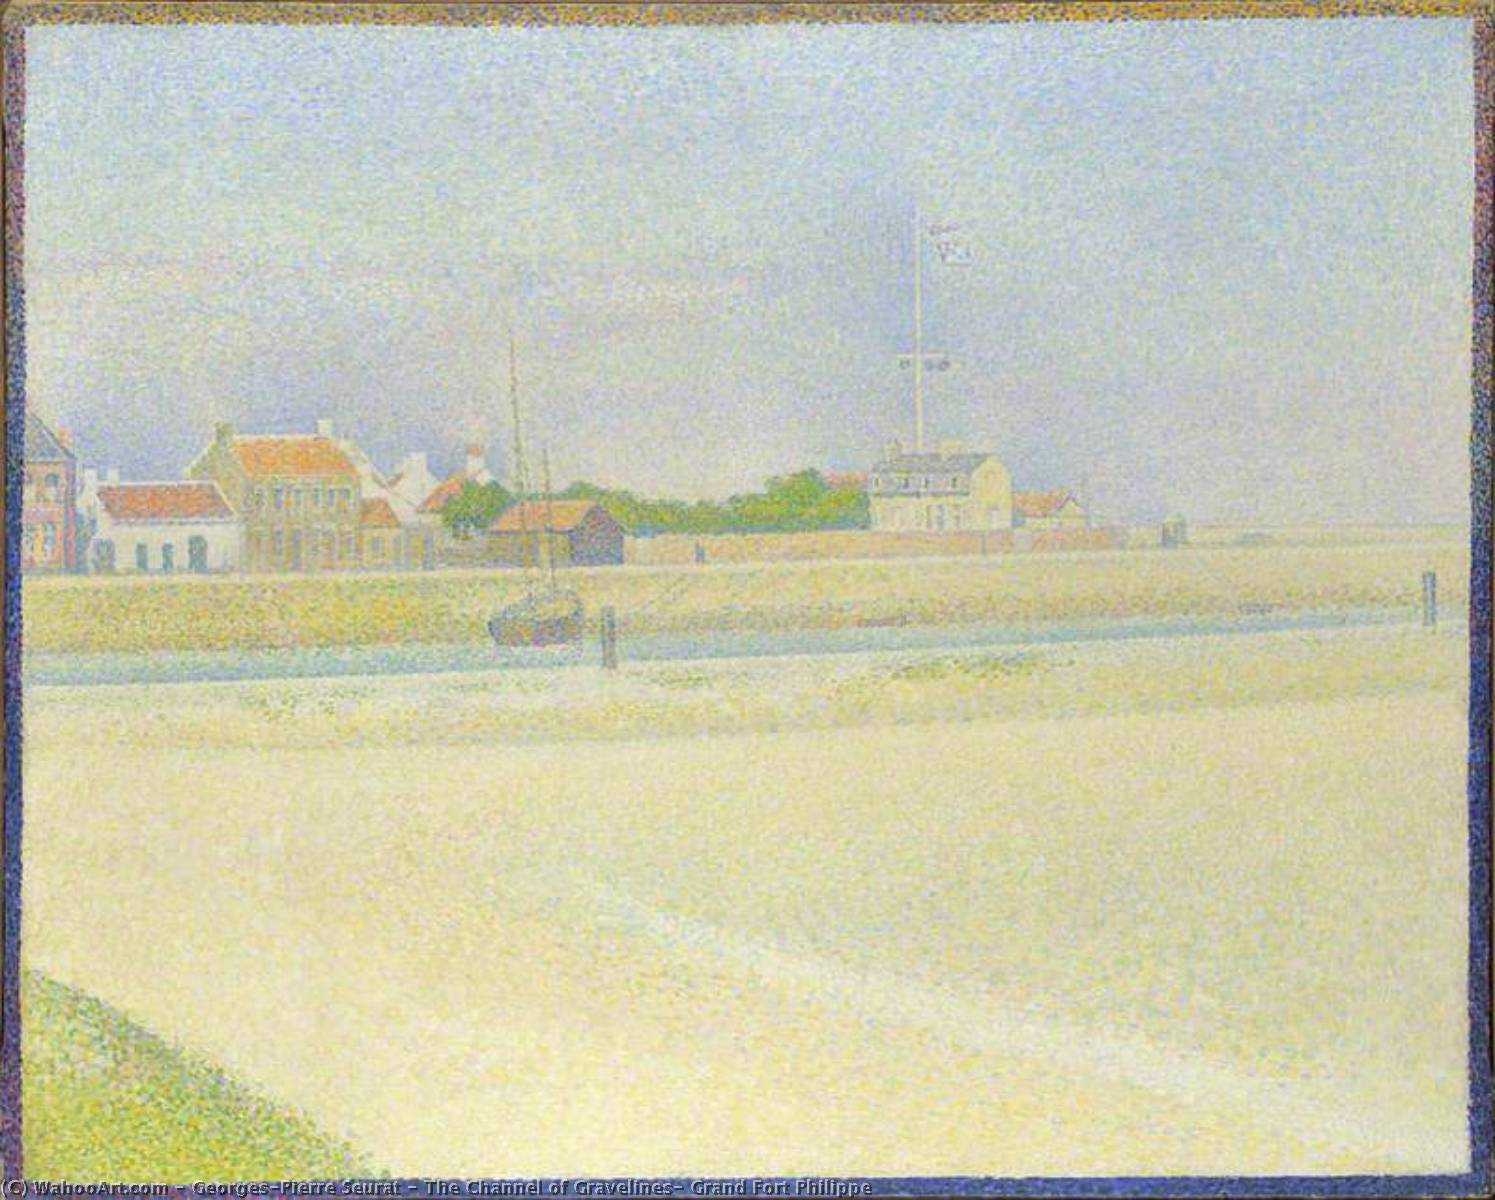 famous painting The Channel of Gravelines, Grand Fort Philippe of Georges Pierre Seurat